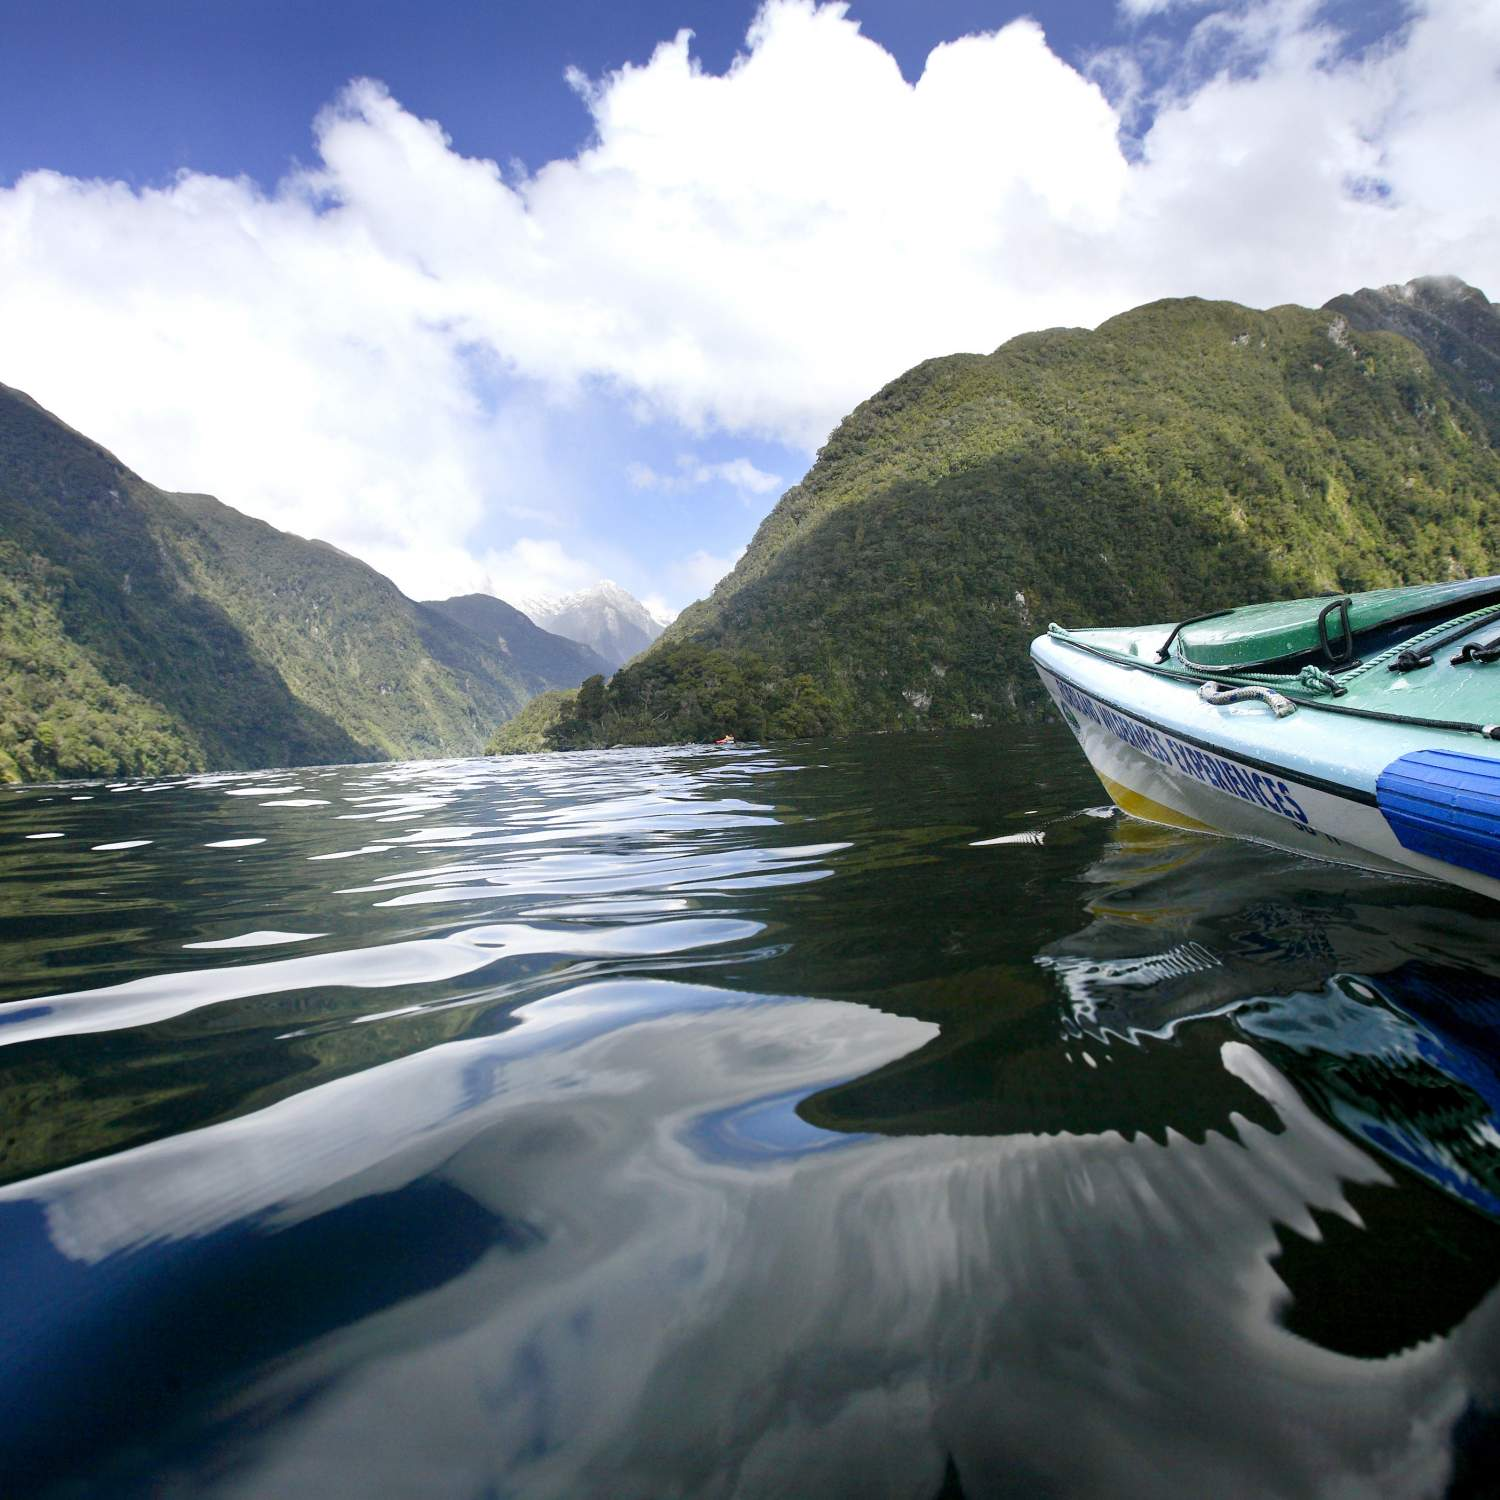 RS 7 Kayaking in Doubtful Sound